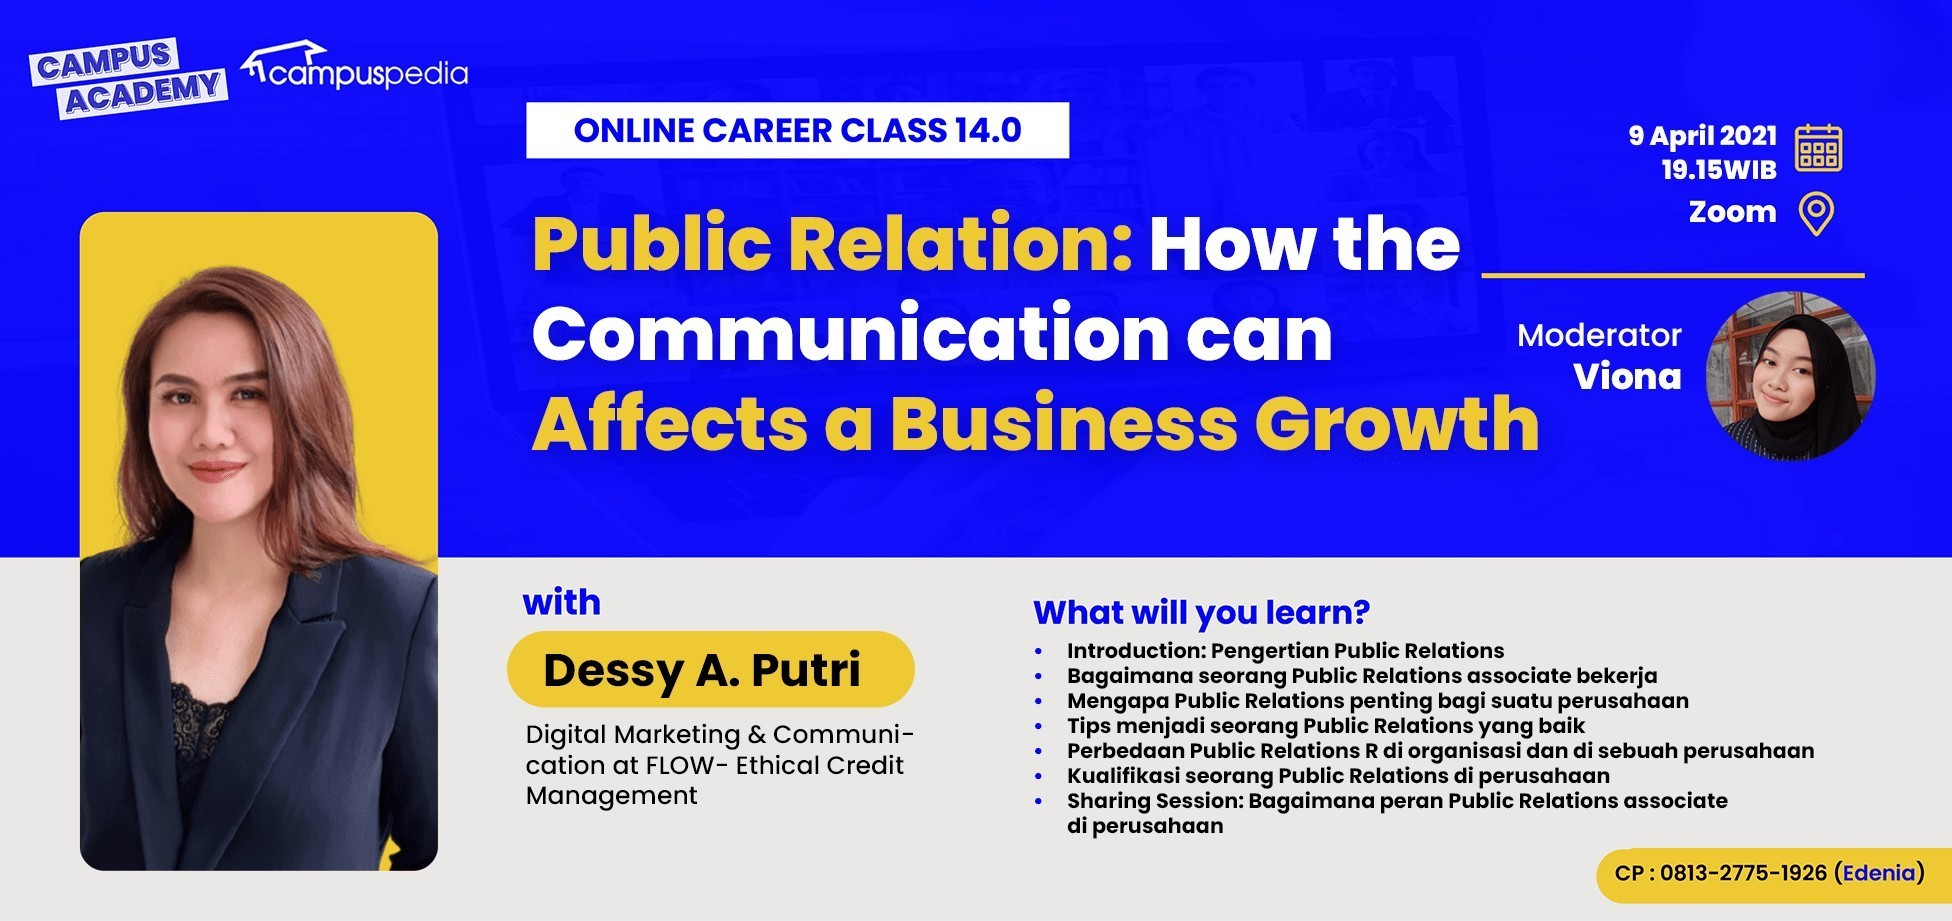 Public Relation: How the Communication can Affects a Business Growth